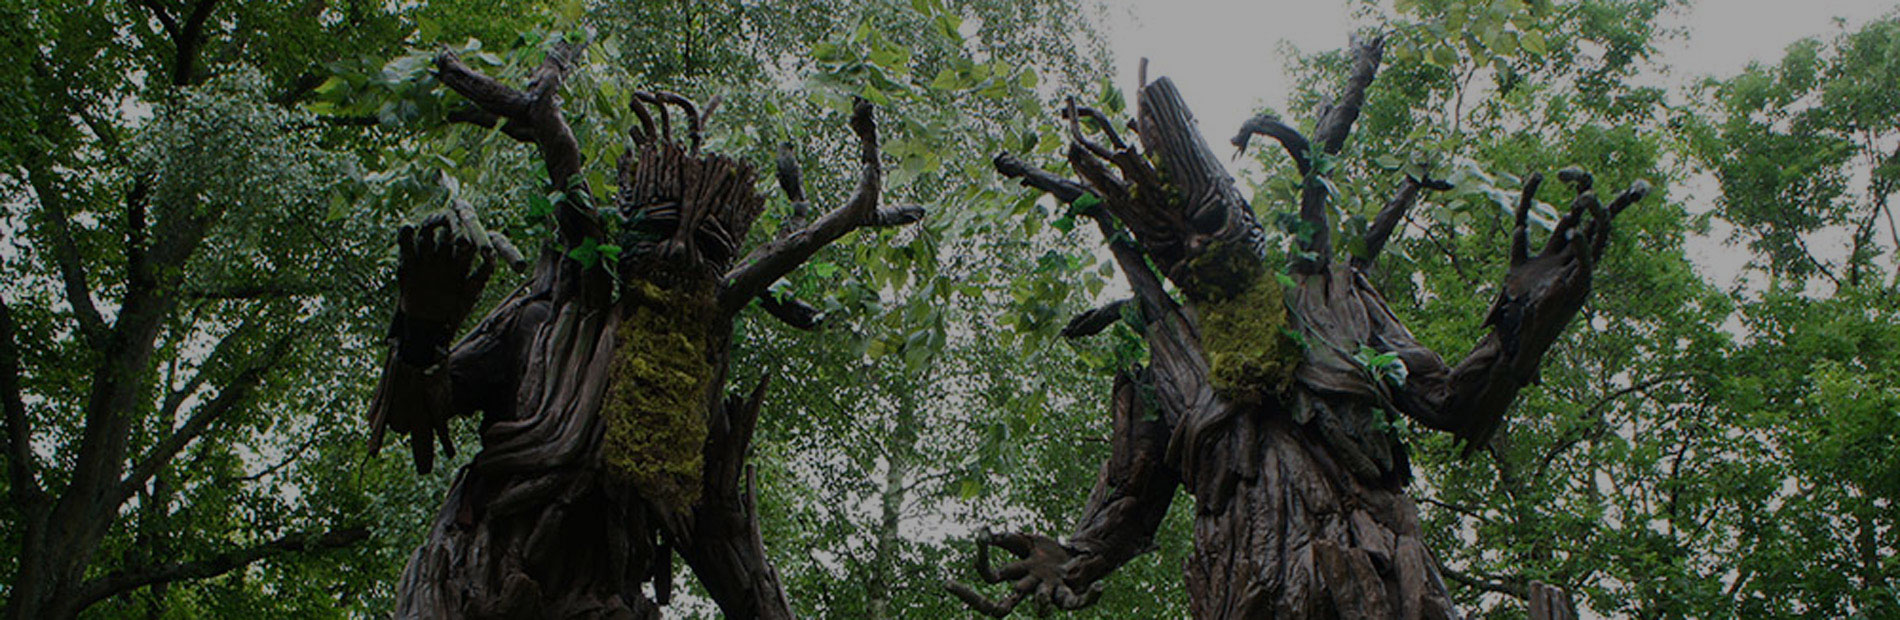 Tree stilt walkers who will be appearing at Yorkshire Fossil Festival